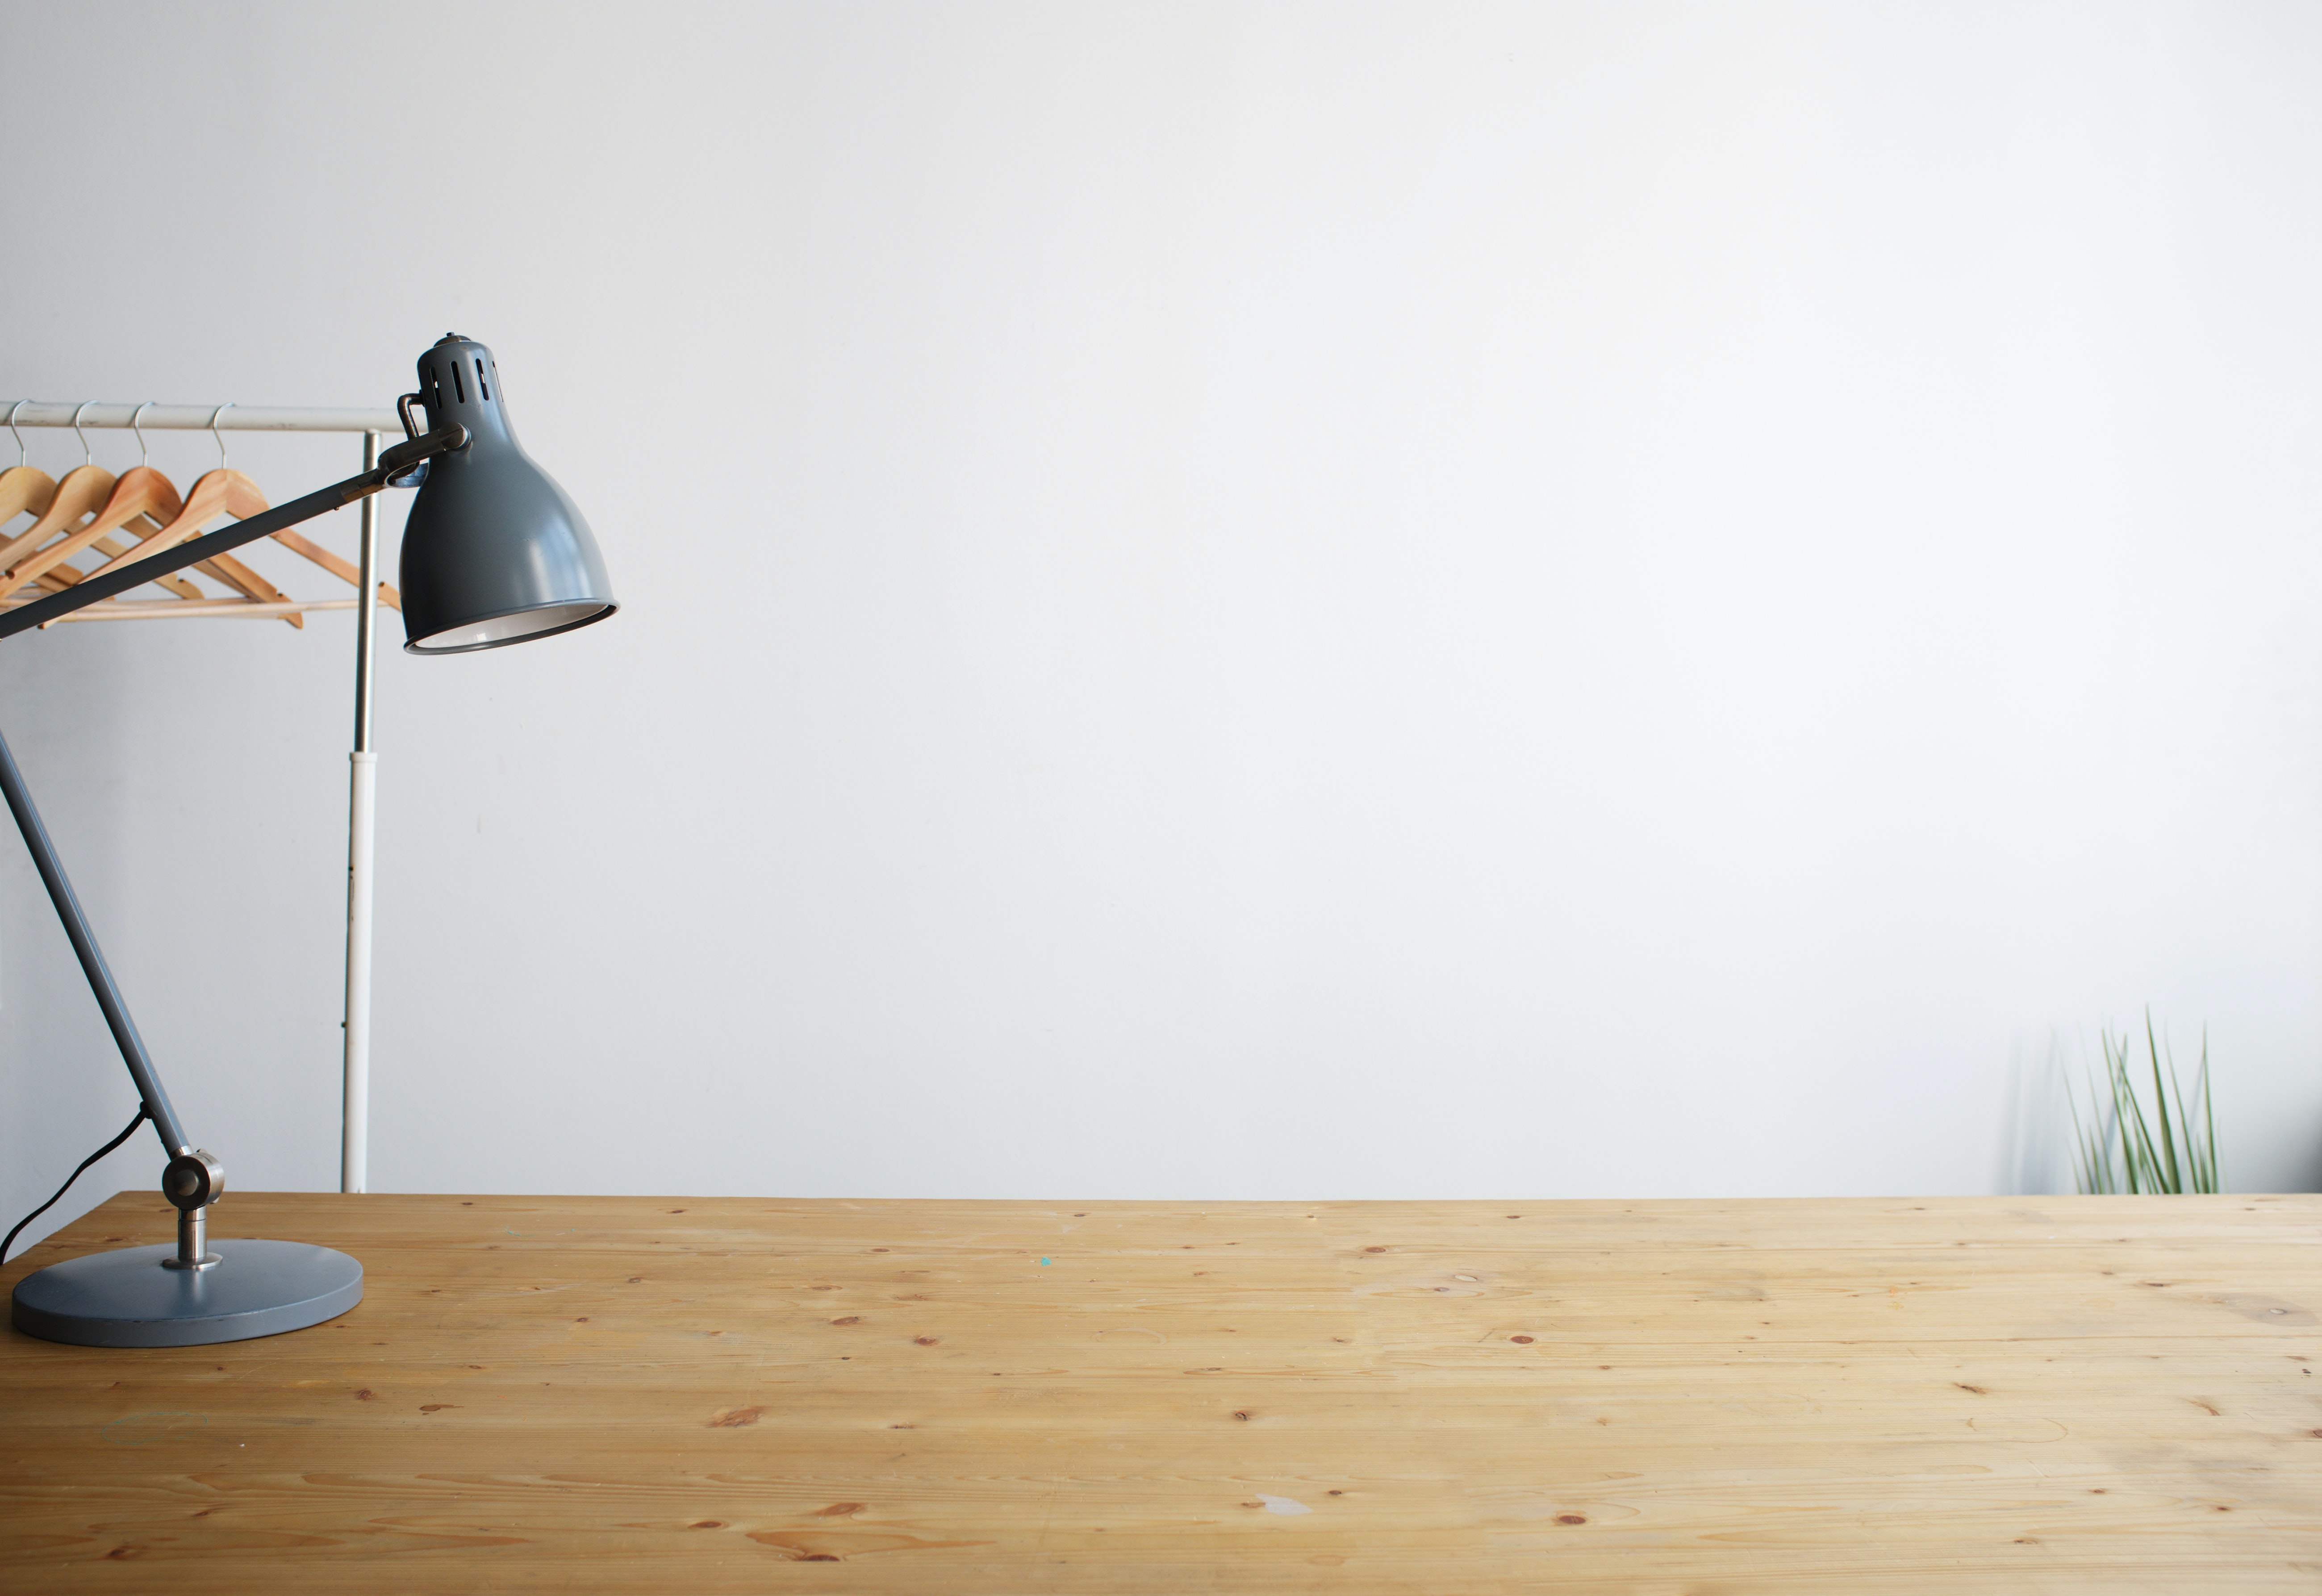 gray balanced-arm lamp on brown wooden table